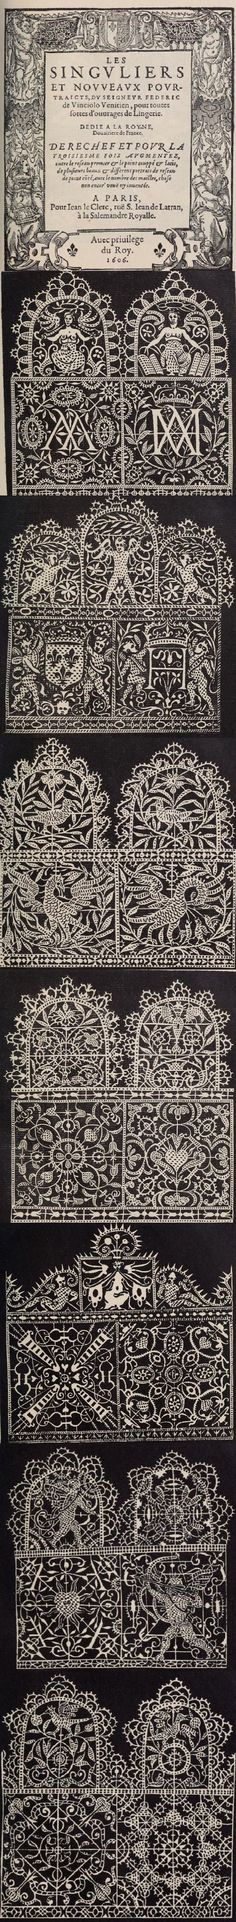 Read this Italian lace and embroidery book from 1909. These beautiful patterns are sure to provide you with many ideas!